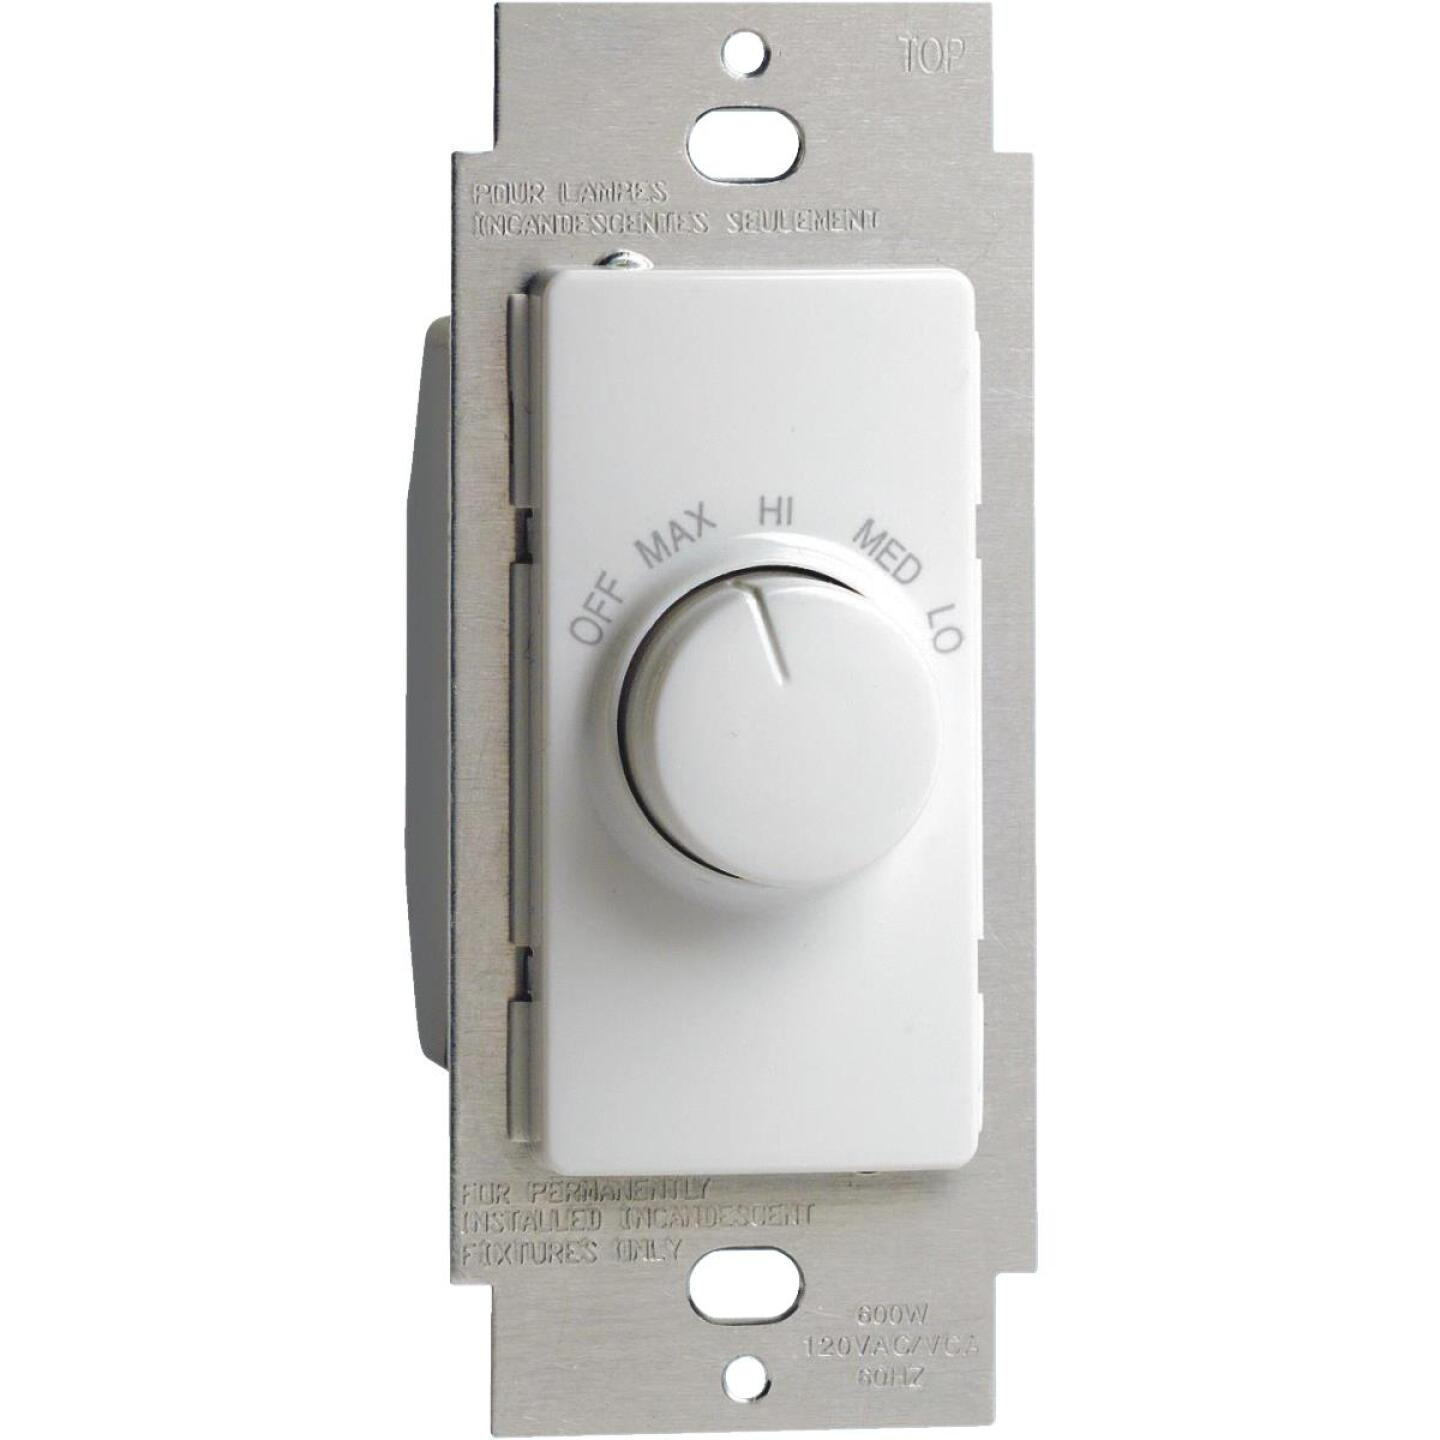 Leviton White 4-Speed Single Pole Rotary On/Off Fan Control Switch Image 1